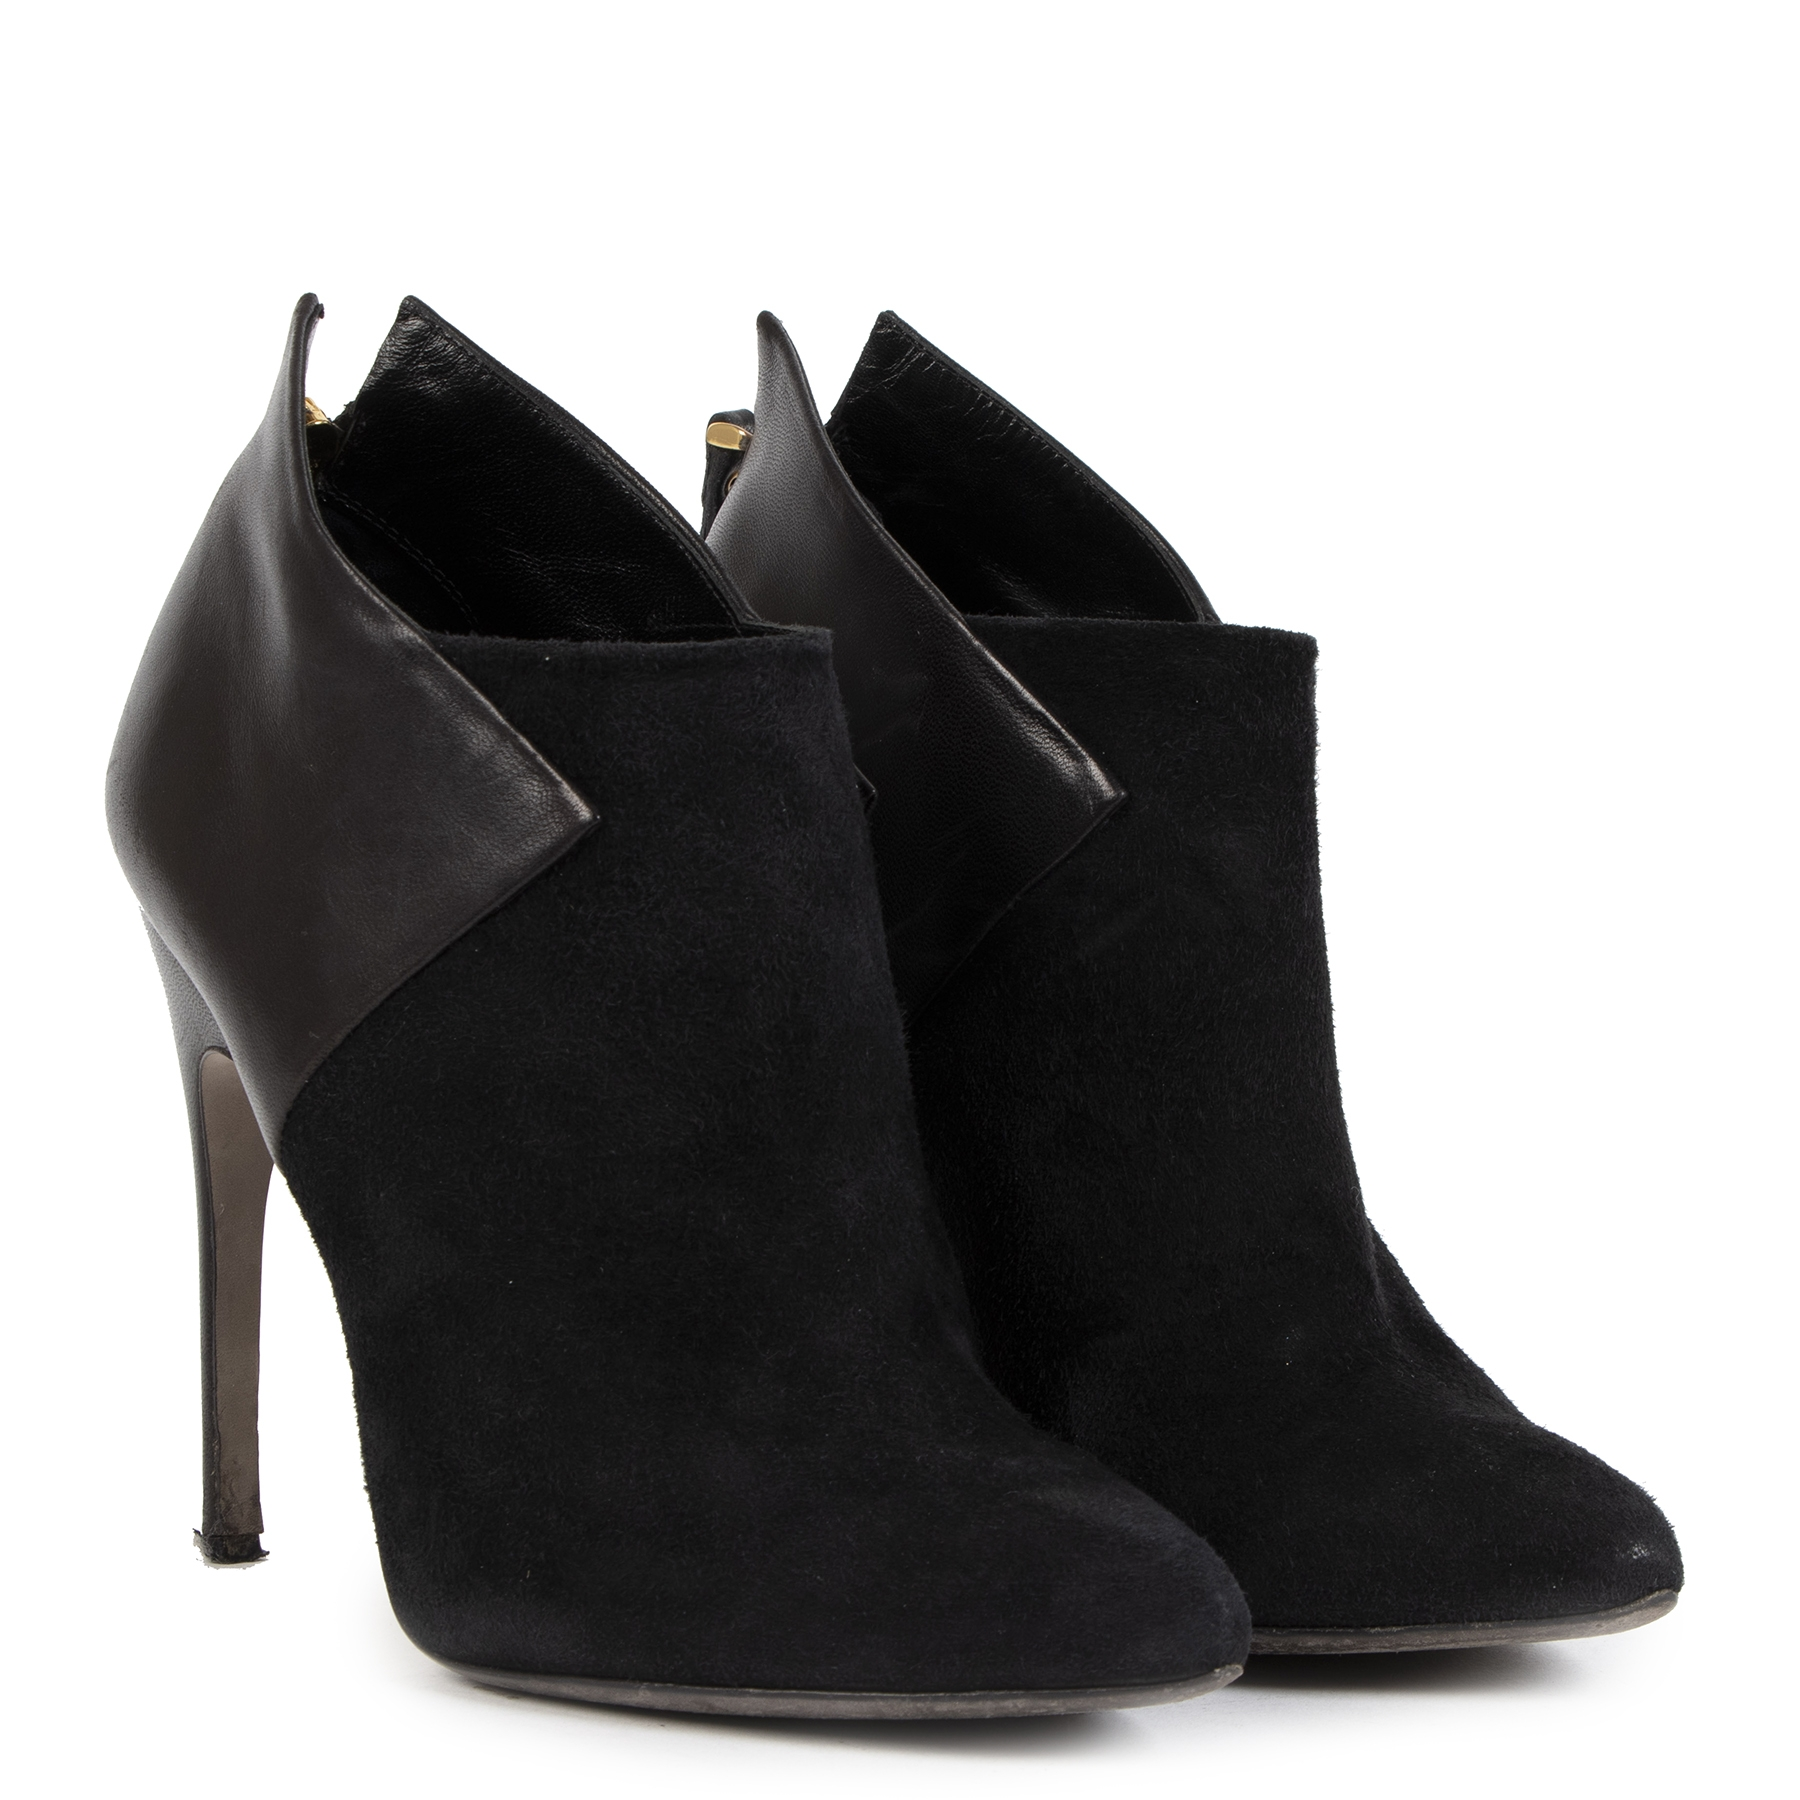 Sergio Rossi Black Suede Ankle Boots - Size 37 1/2